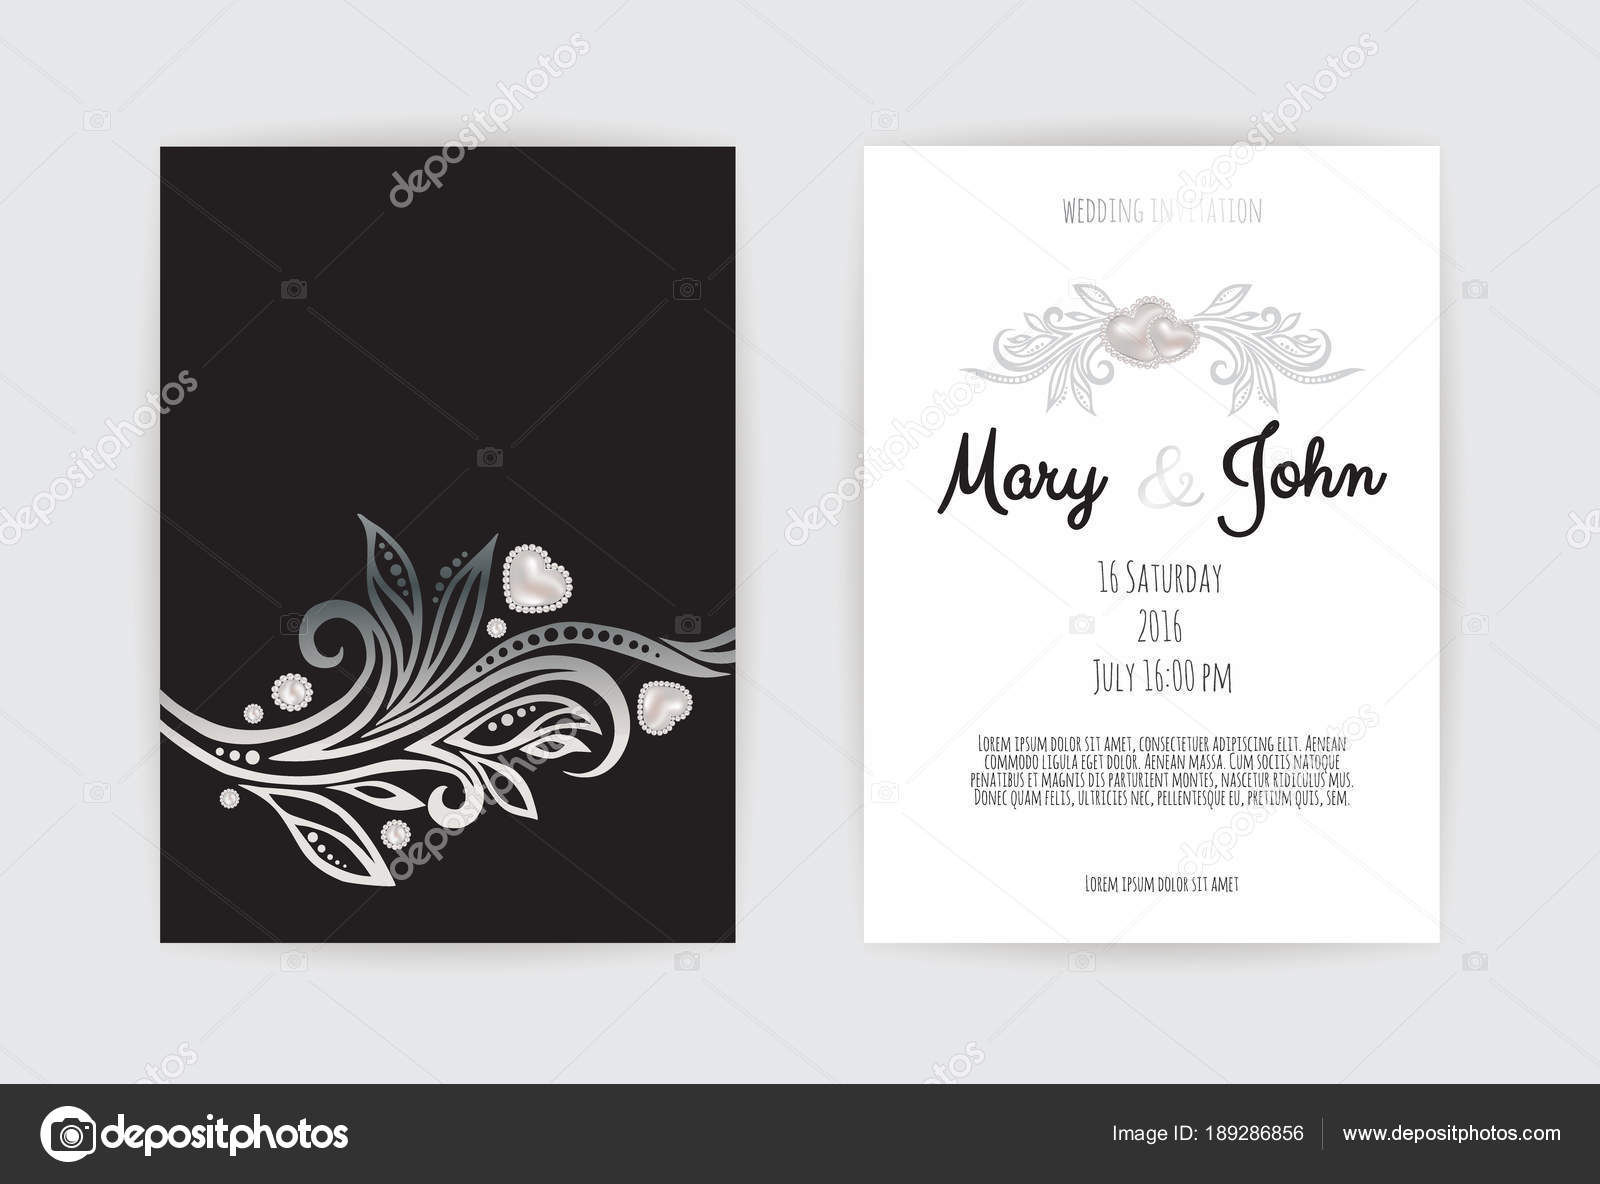 Vintage Wedding Invitation Templates Cover Design Silver Leaves